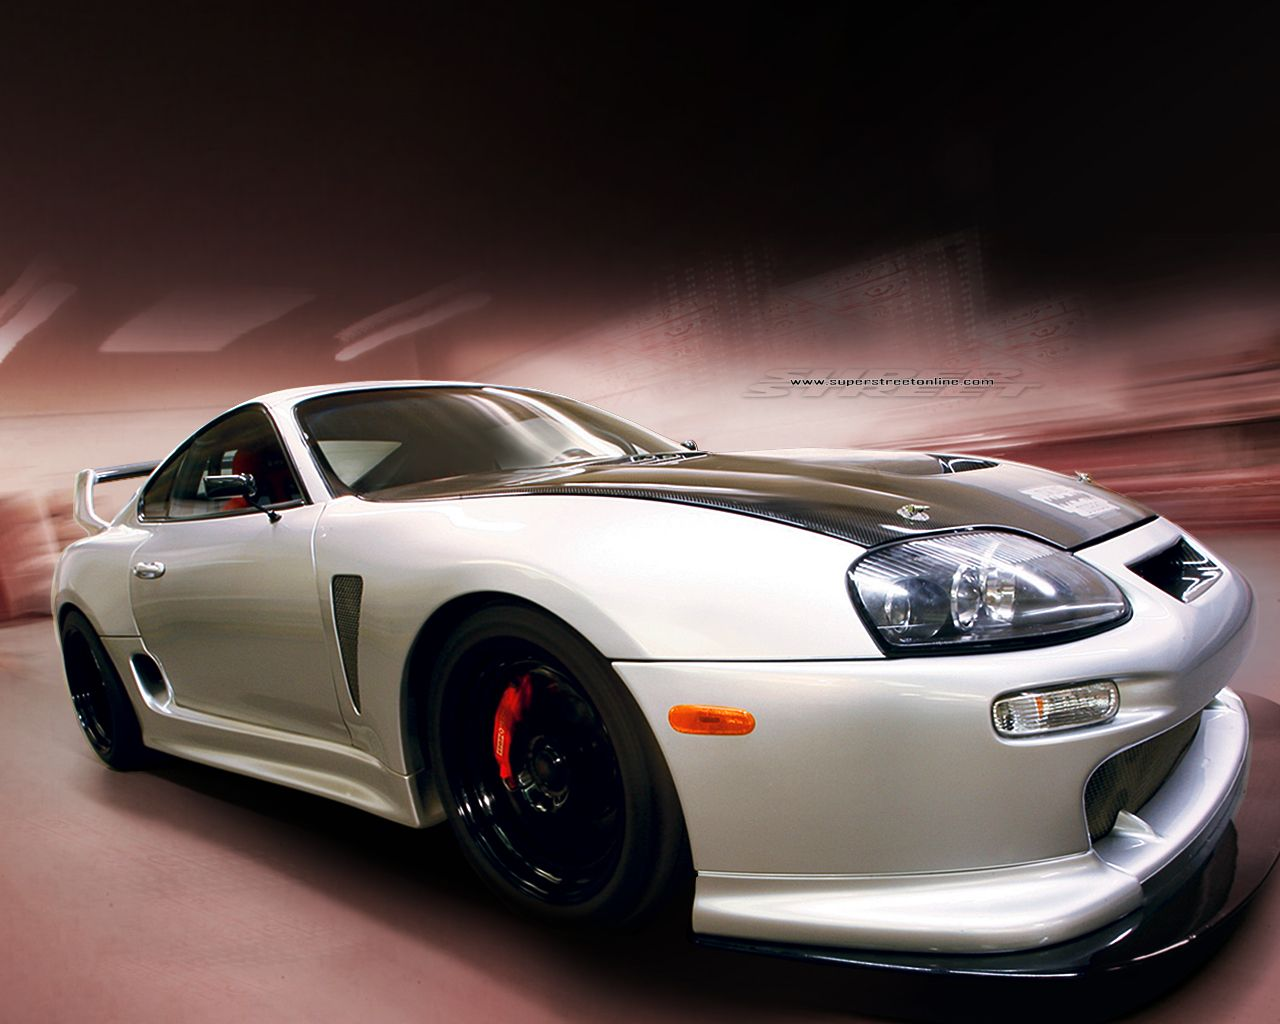 63 best images about MKIV SUPRA on Pinterest  Cars Toyota and